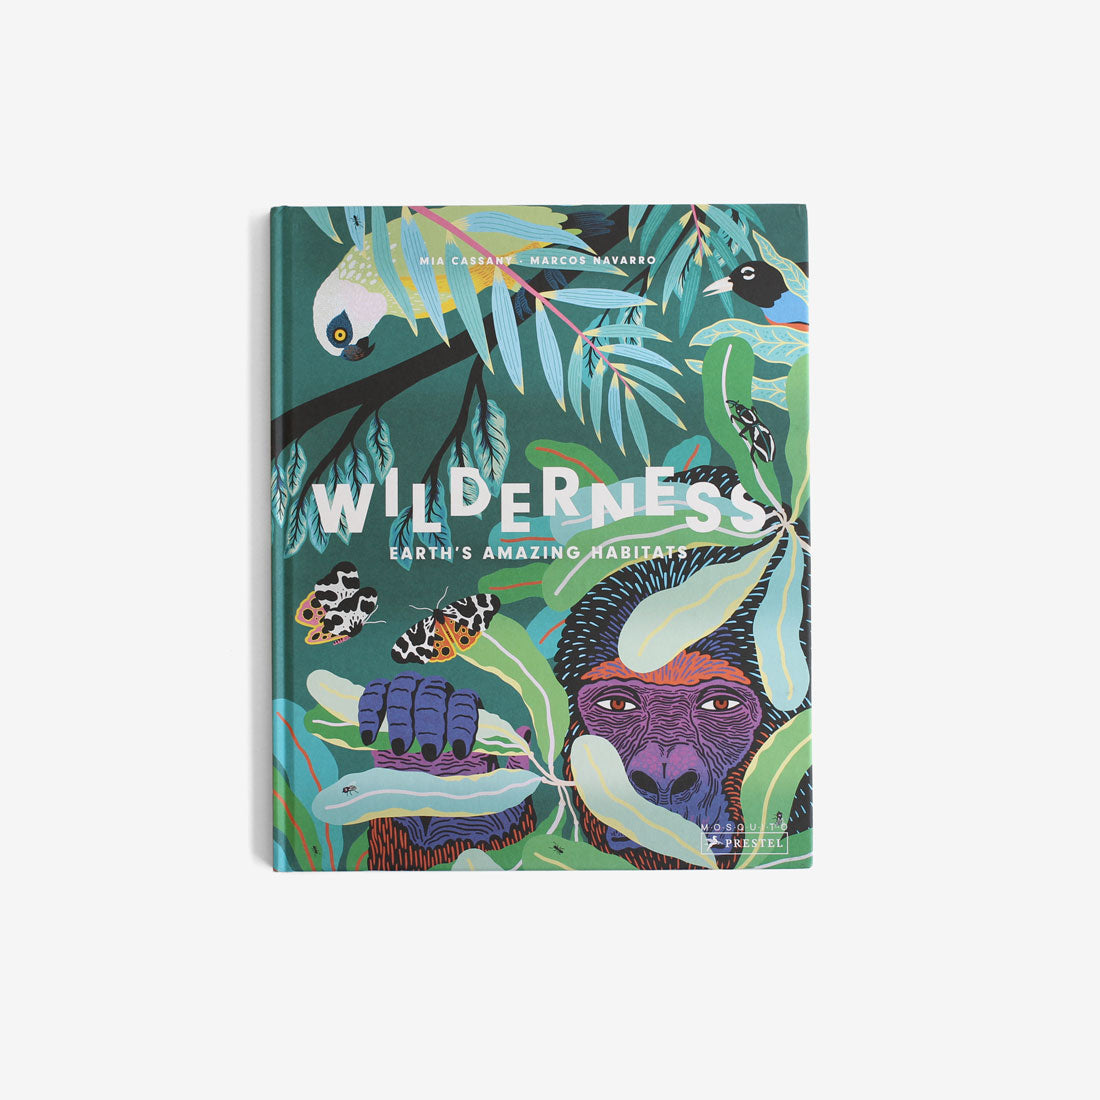 Wilderness - Earth's Amazing Habitats